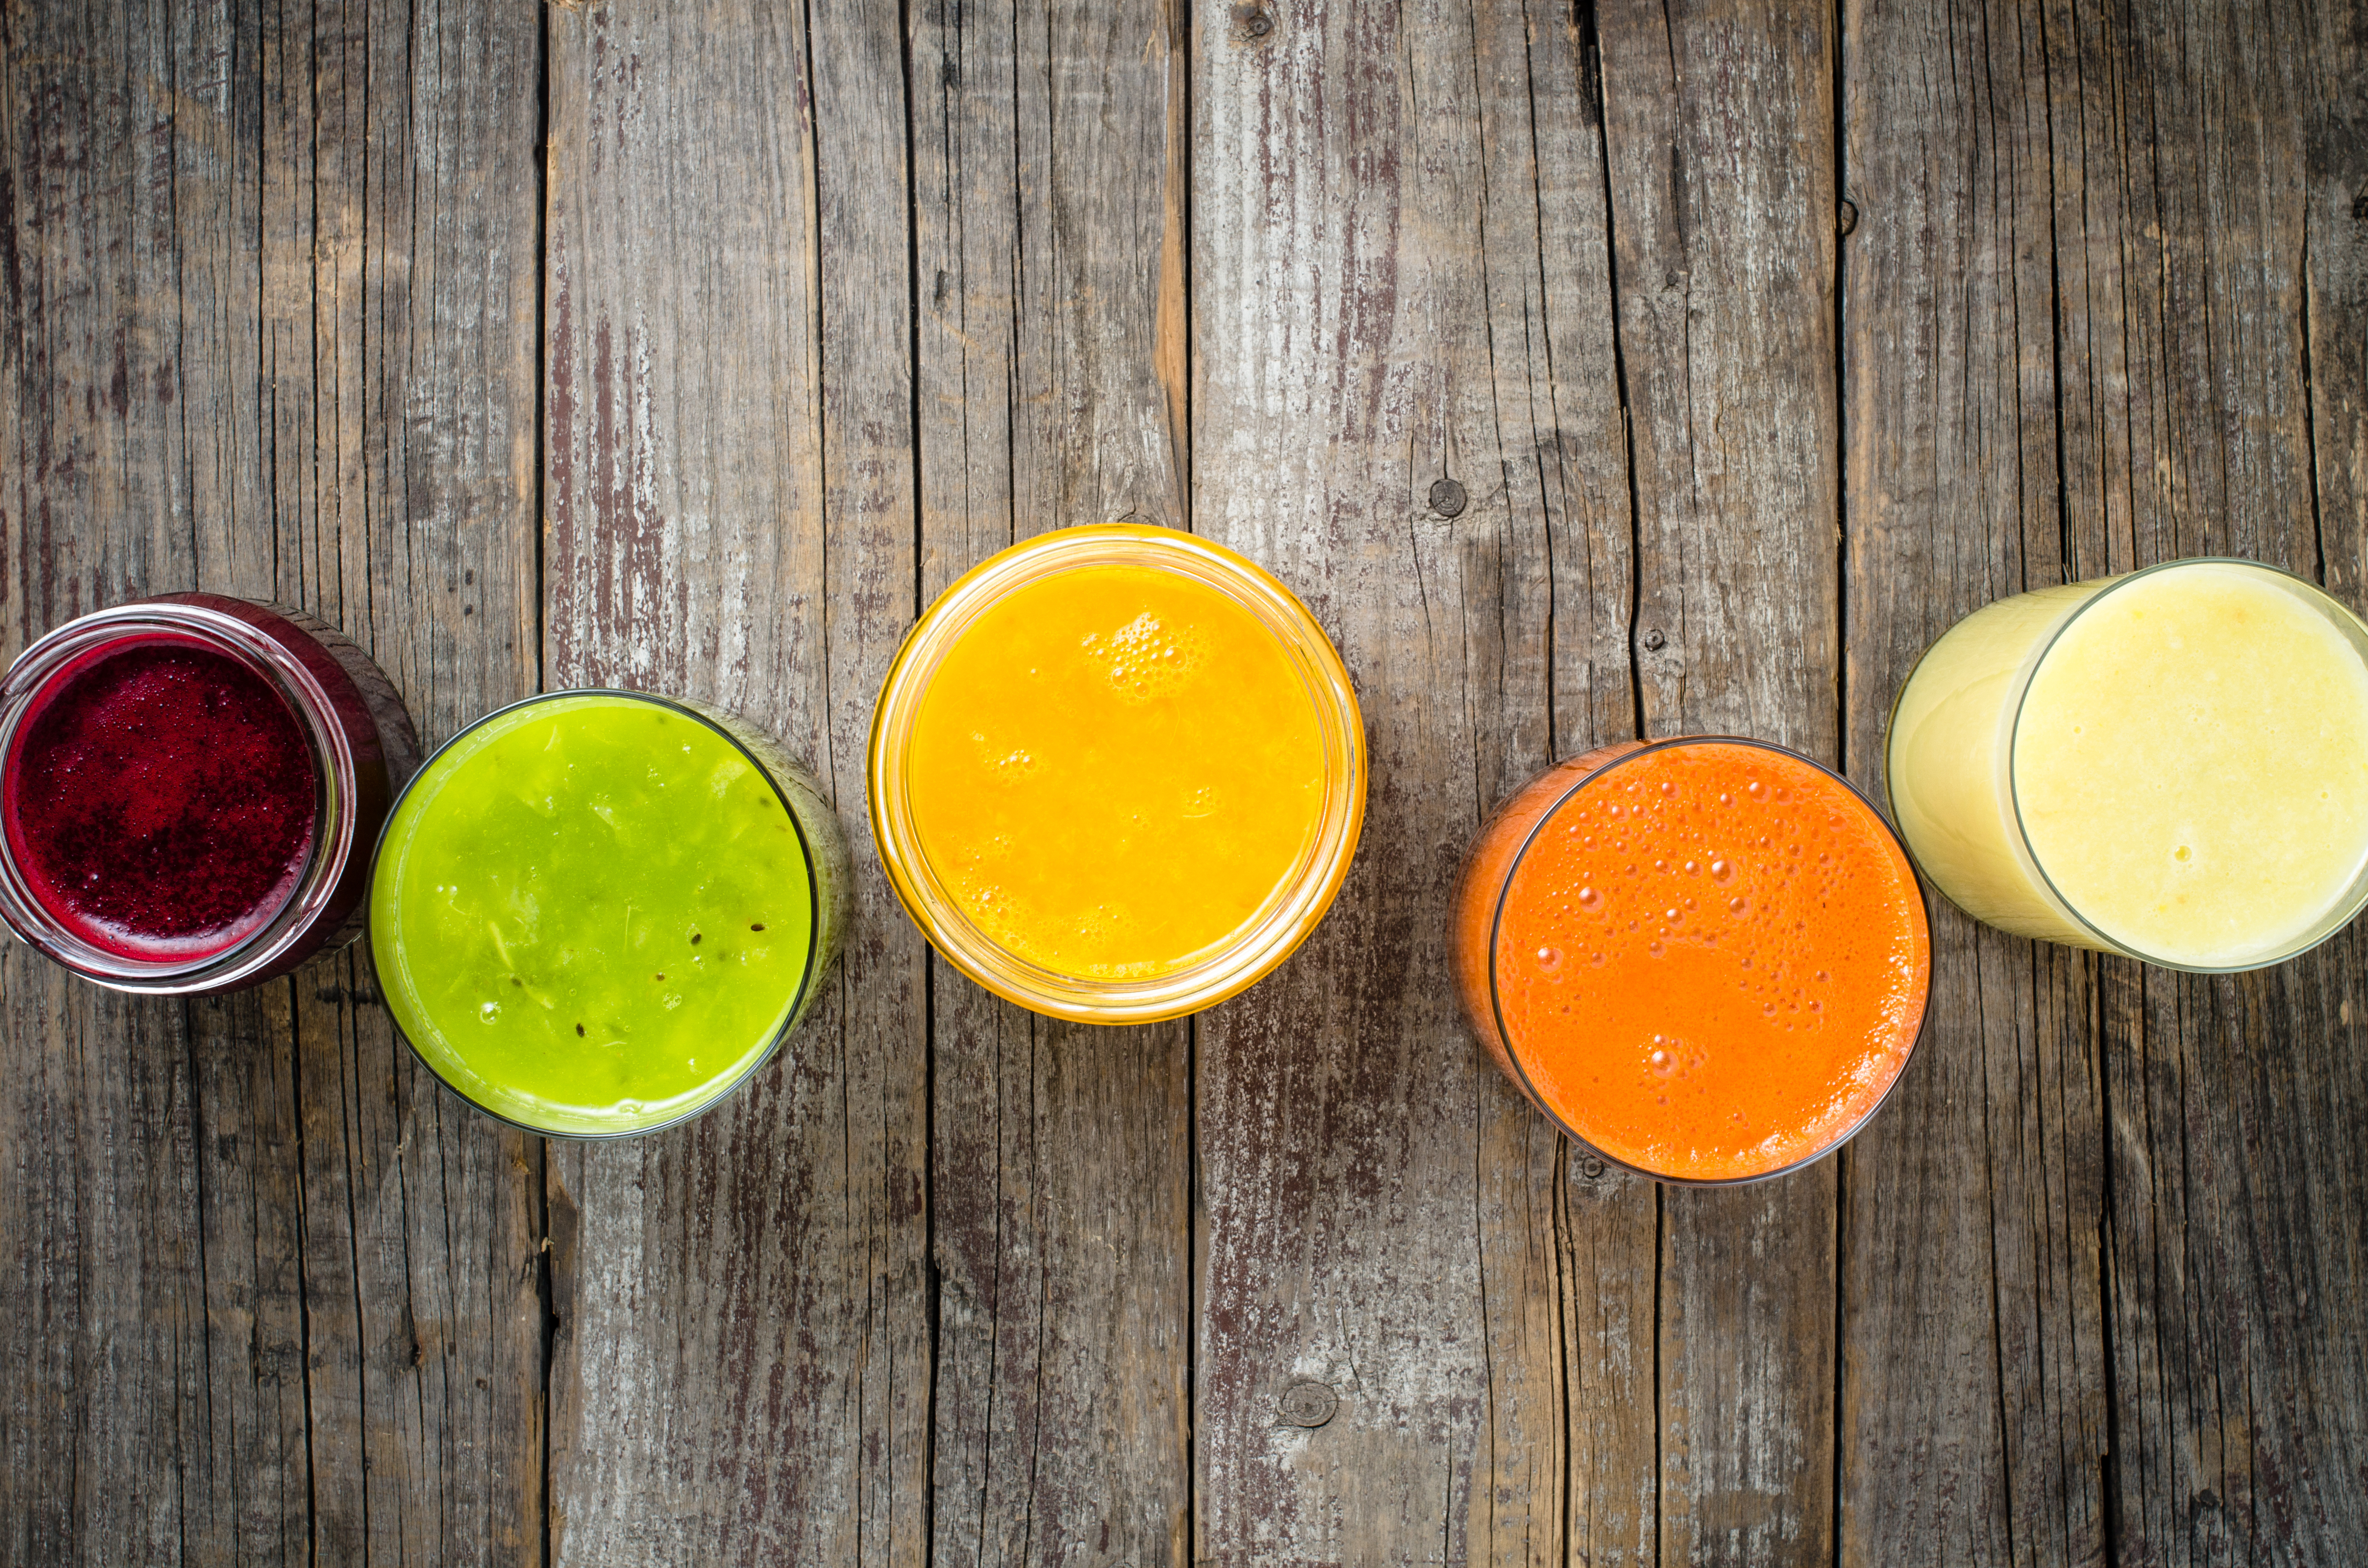 What Are The Health Benefits Of Juice?